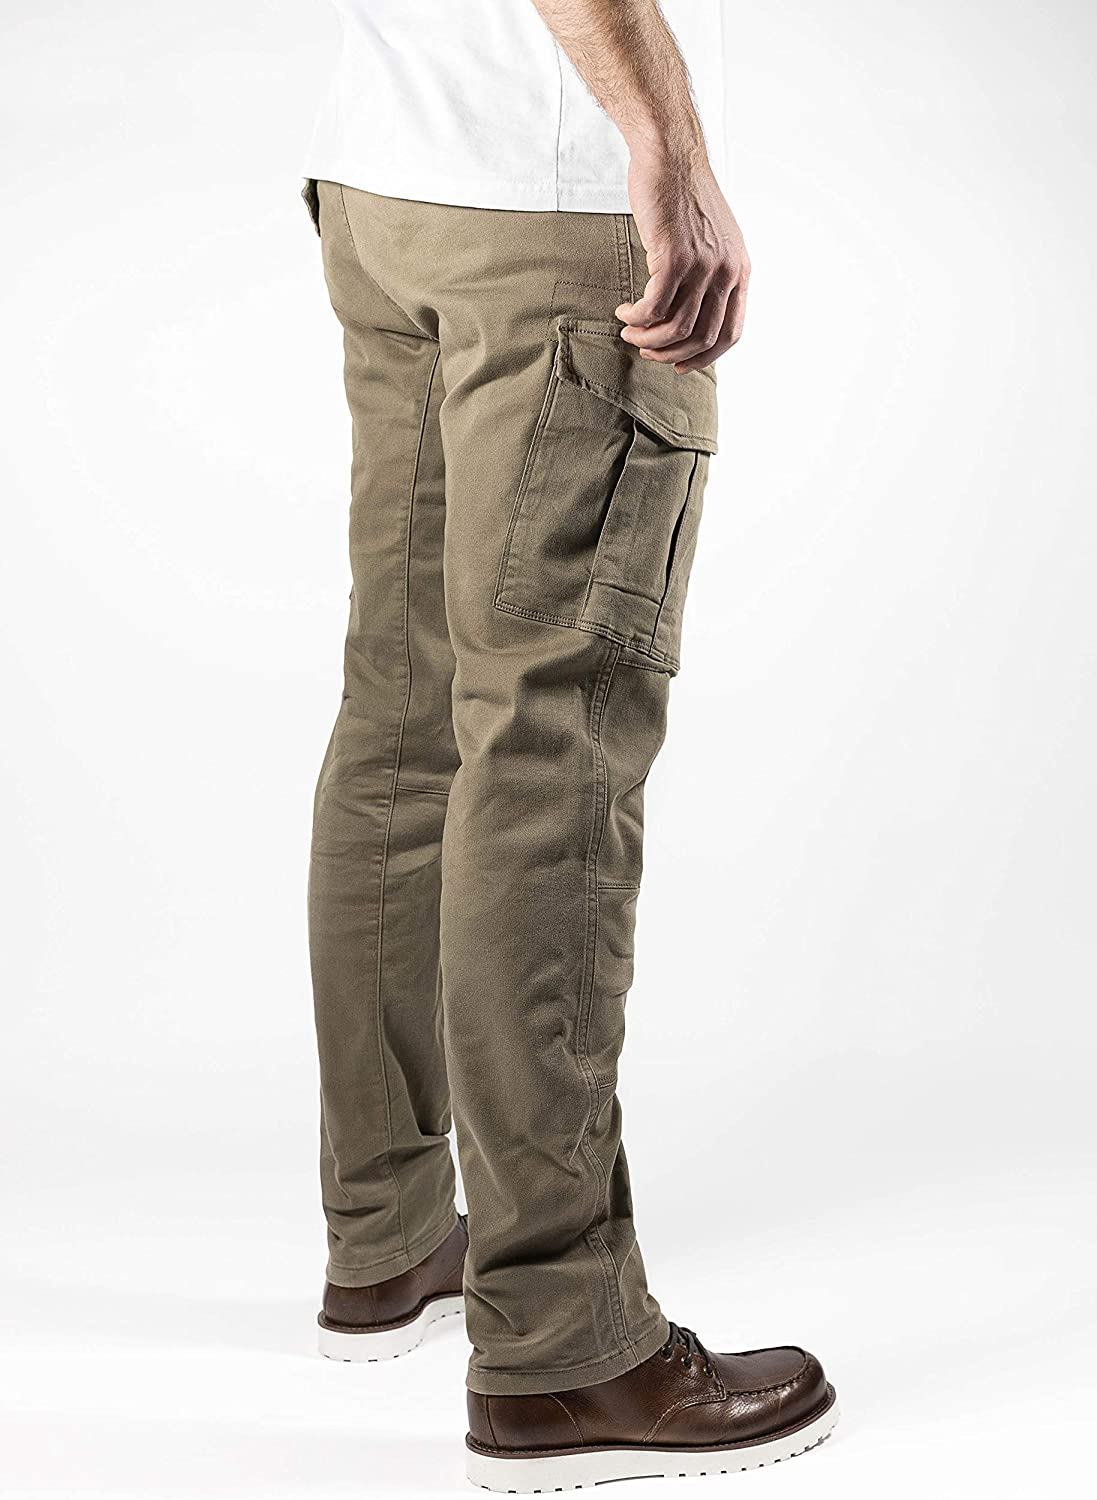 Beige 34 W//34 L John Doe Stroker Cargo XTM Motorcycle Trousers with Kevlar XTM Made with Dupont Kevlar Can be Inserted Protectors Breathable Motorcycle Cargo Trousers with Side Pockets